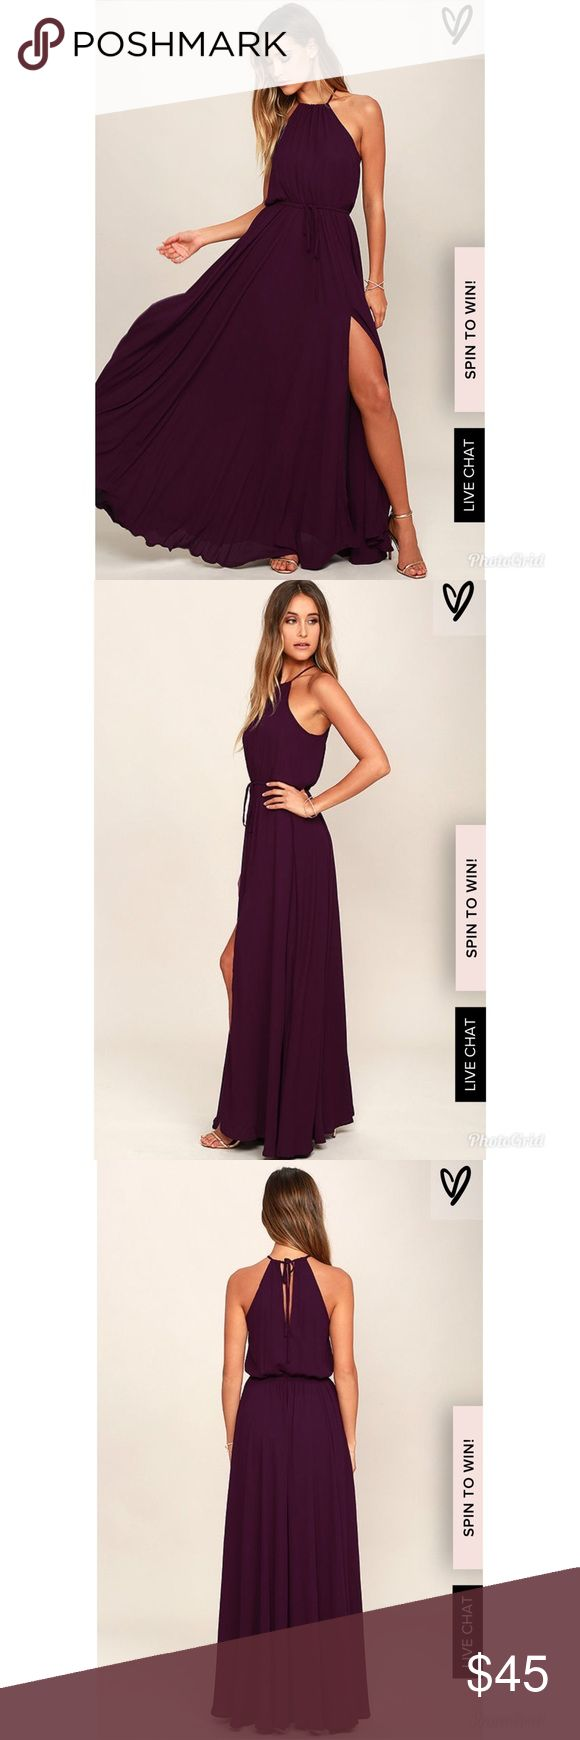 Plum Purple Maxi Dress See through material. Beachy vibes! Has a slit down the knee area. Only worn Once. Lulu's Dresses Maxi